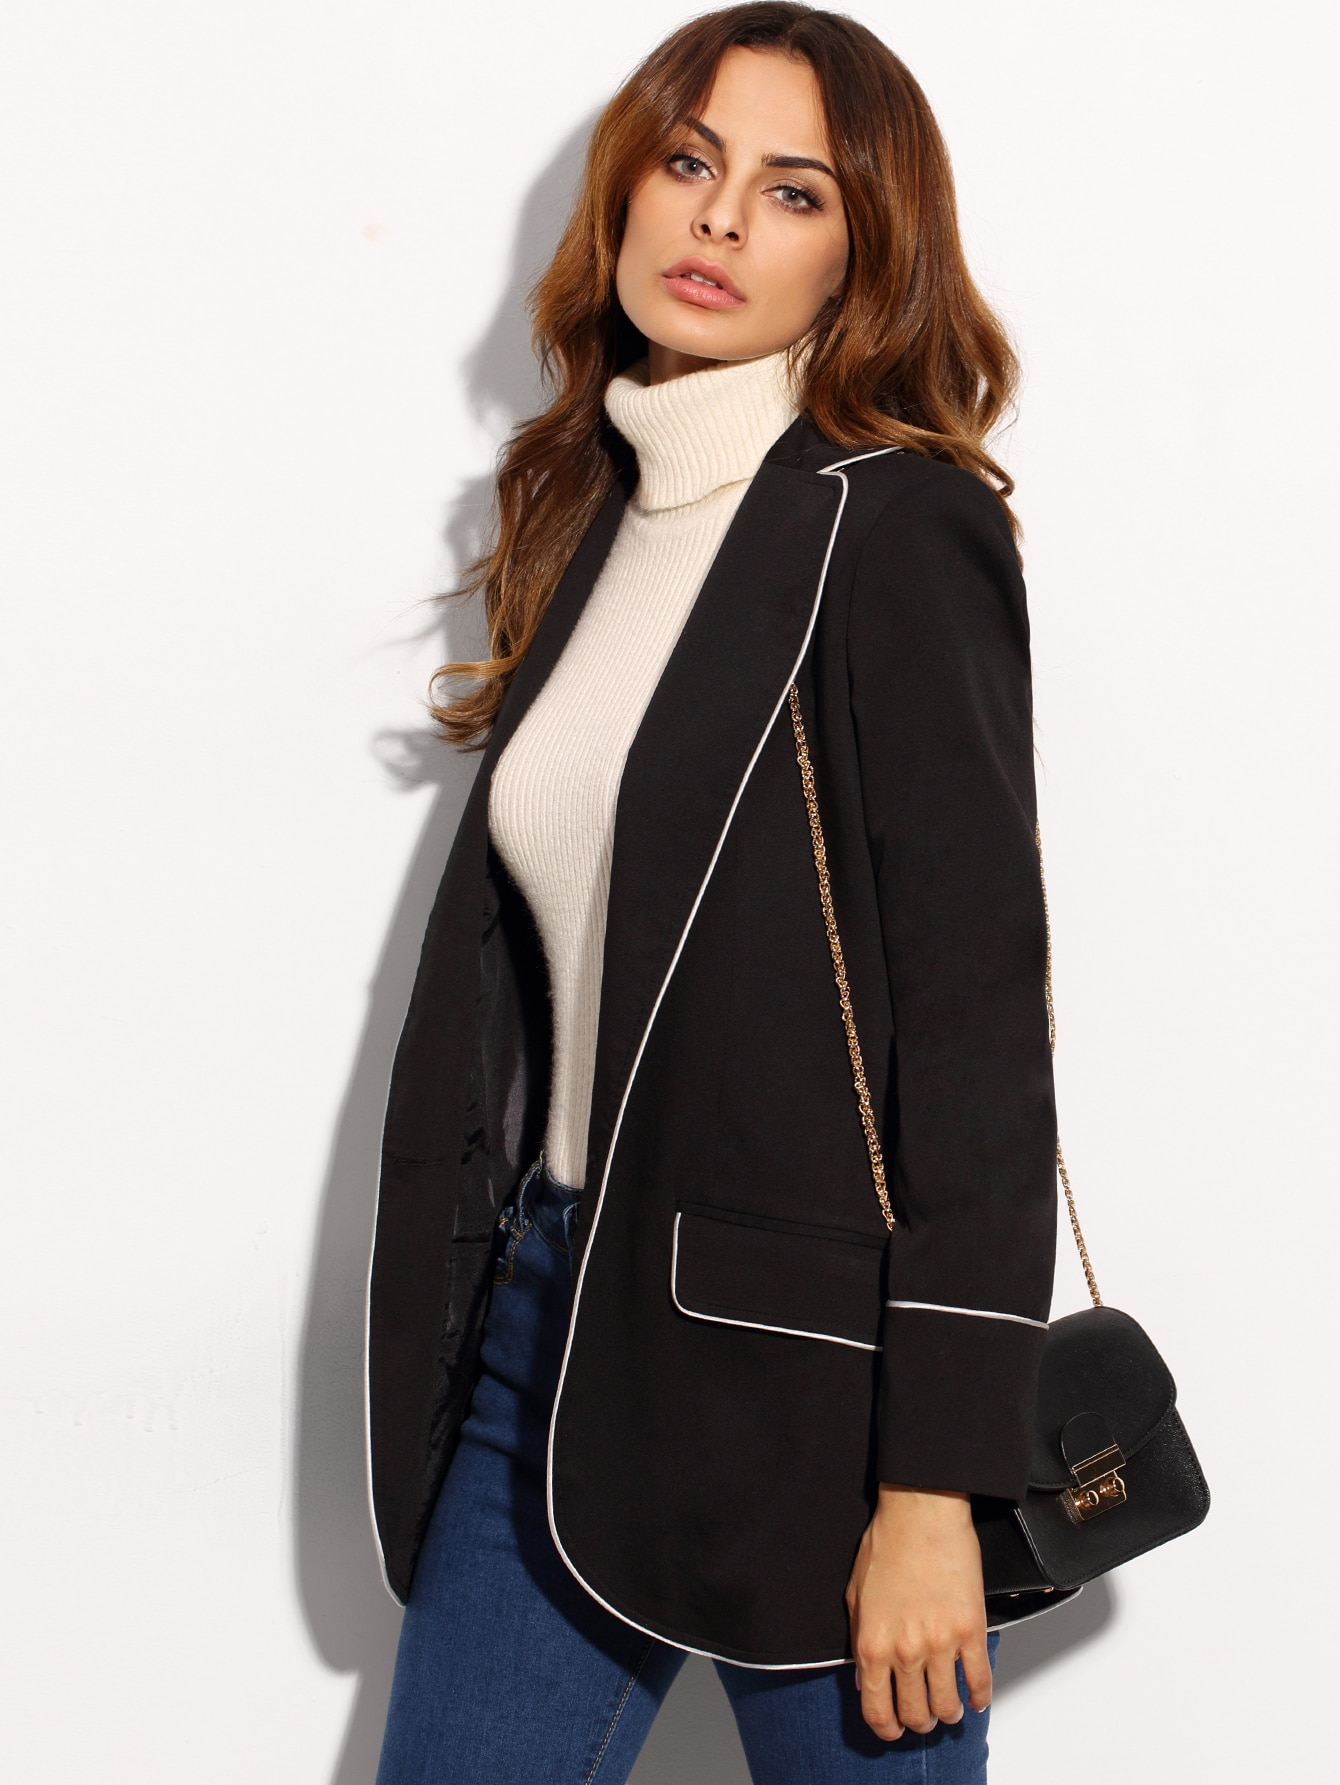 Black Contrast Piping Open Front Longline BlazerBlack Contrast Piping Open Front Longline Blazer<br><br>color: Black<br>size: XS